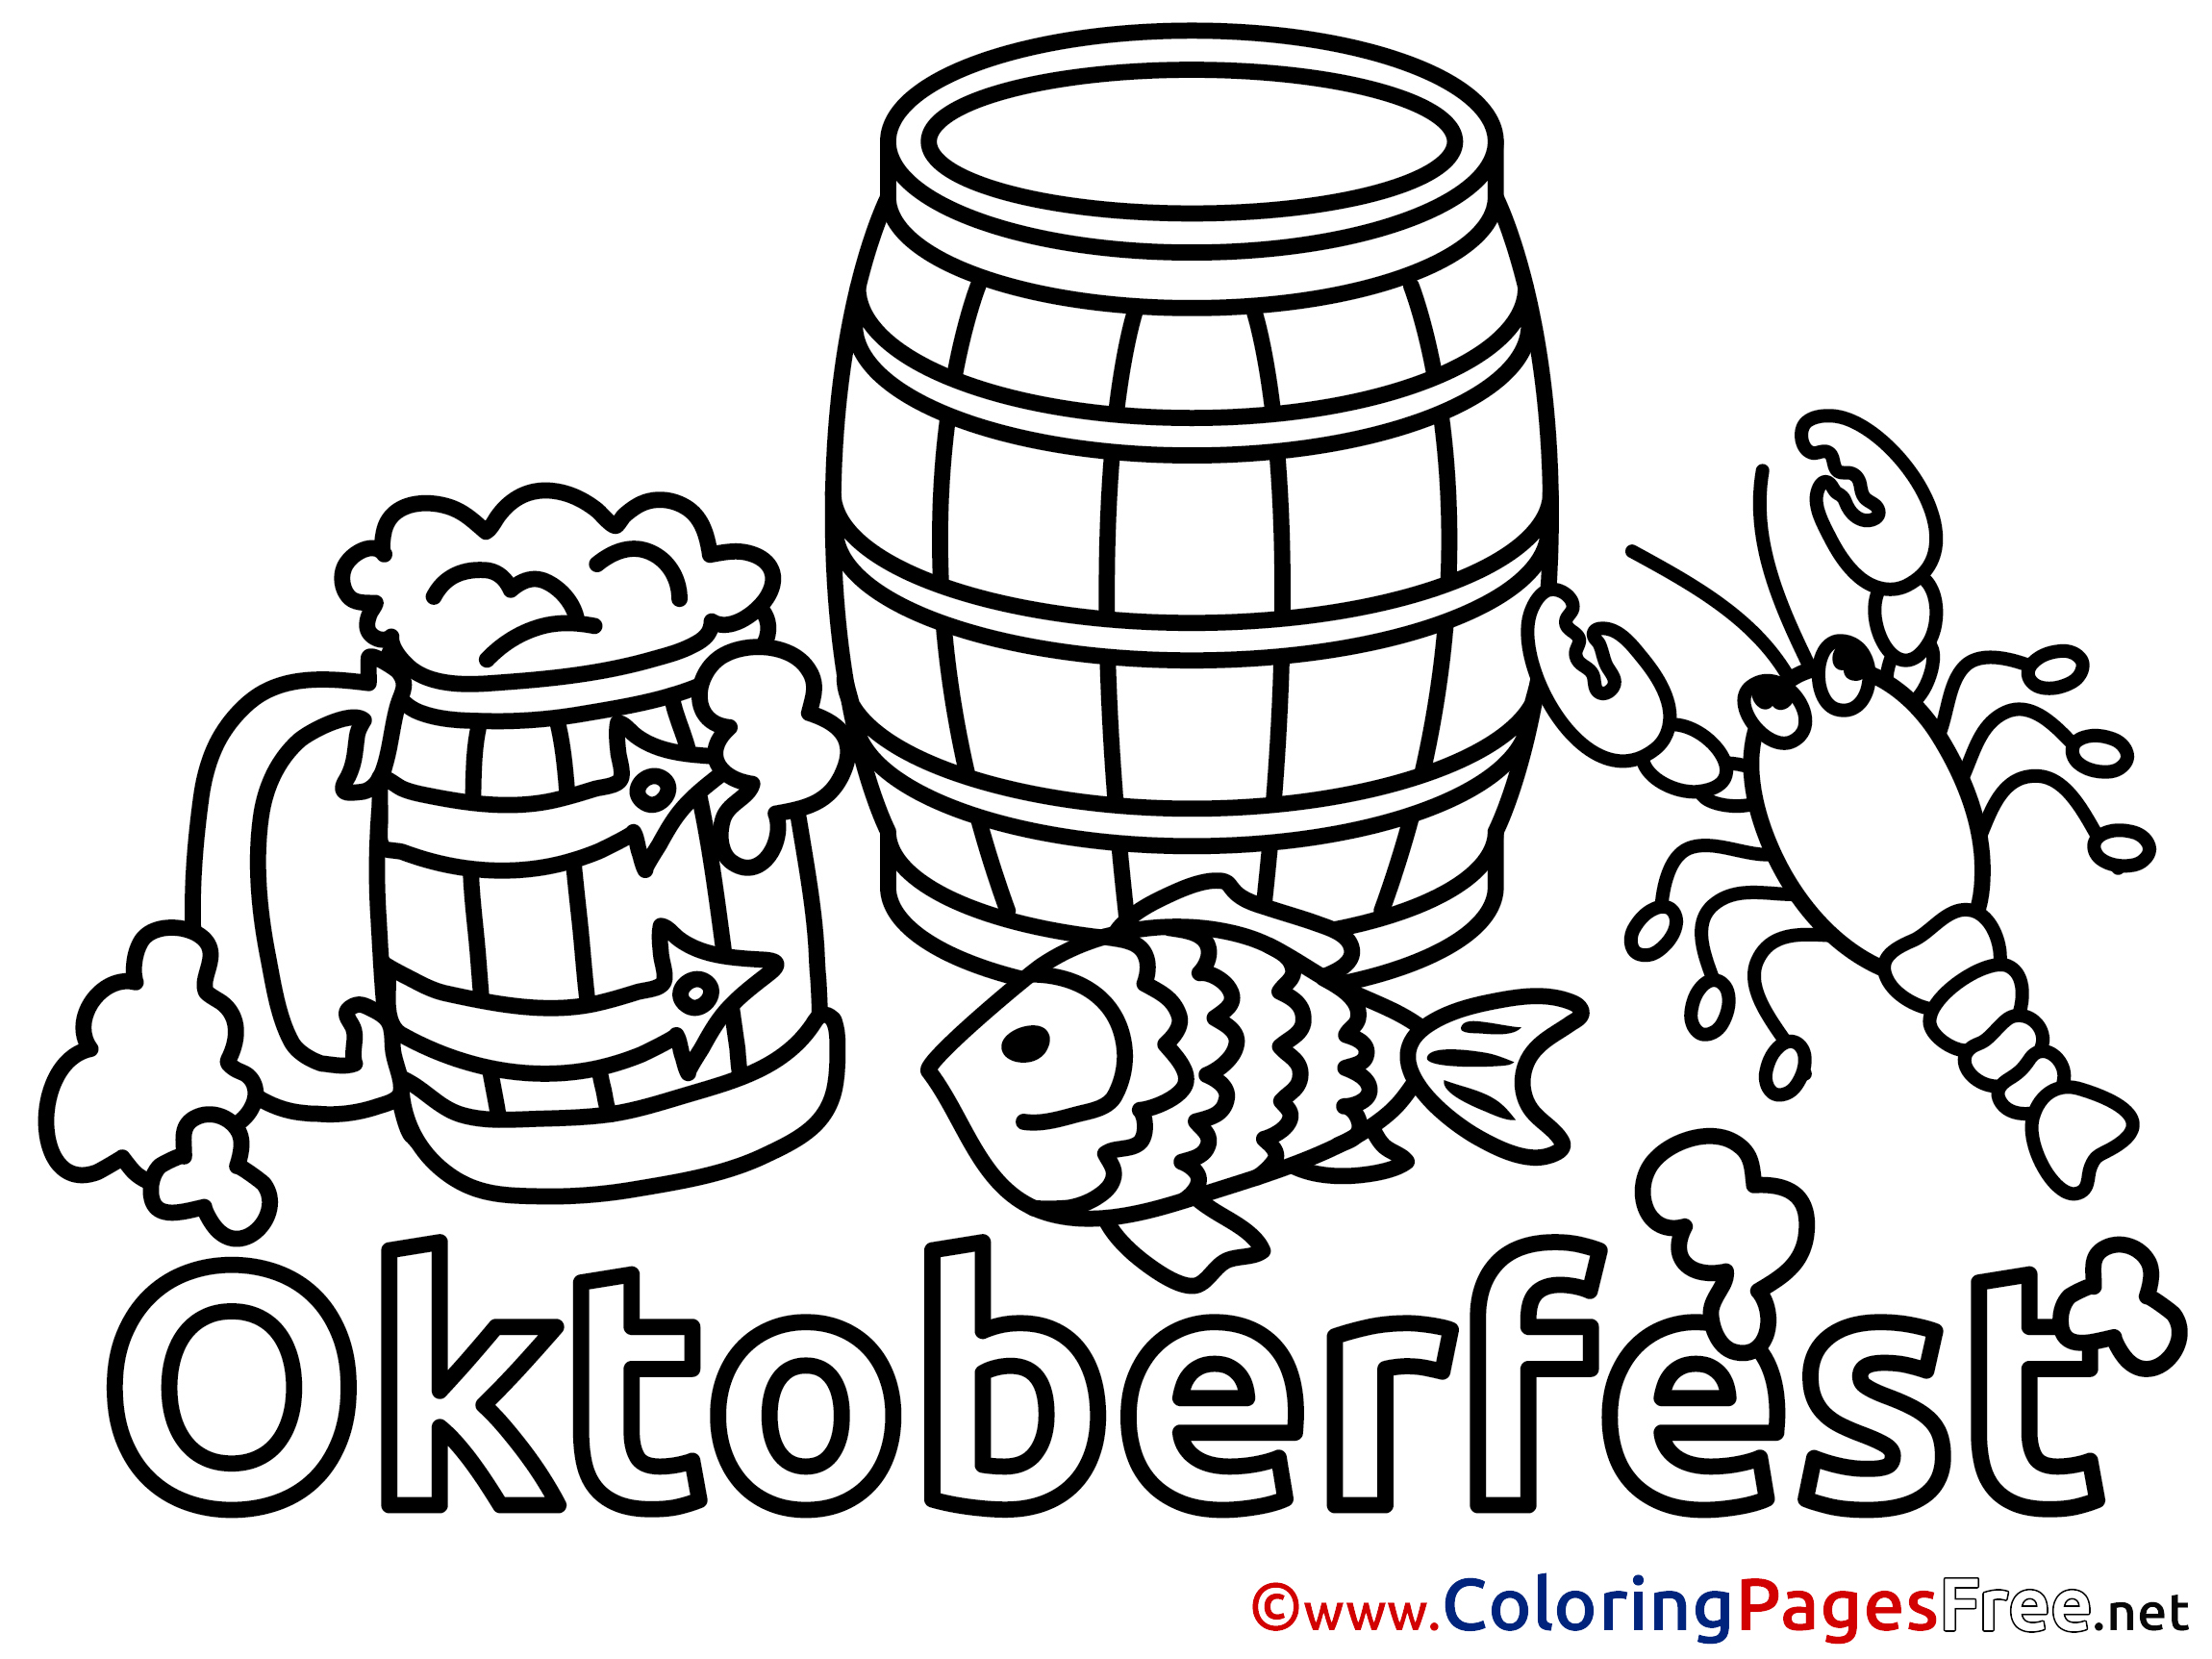 Oktoberfest Coloring Pages